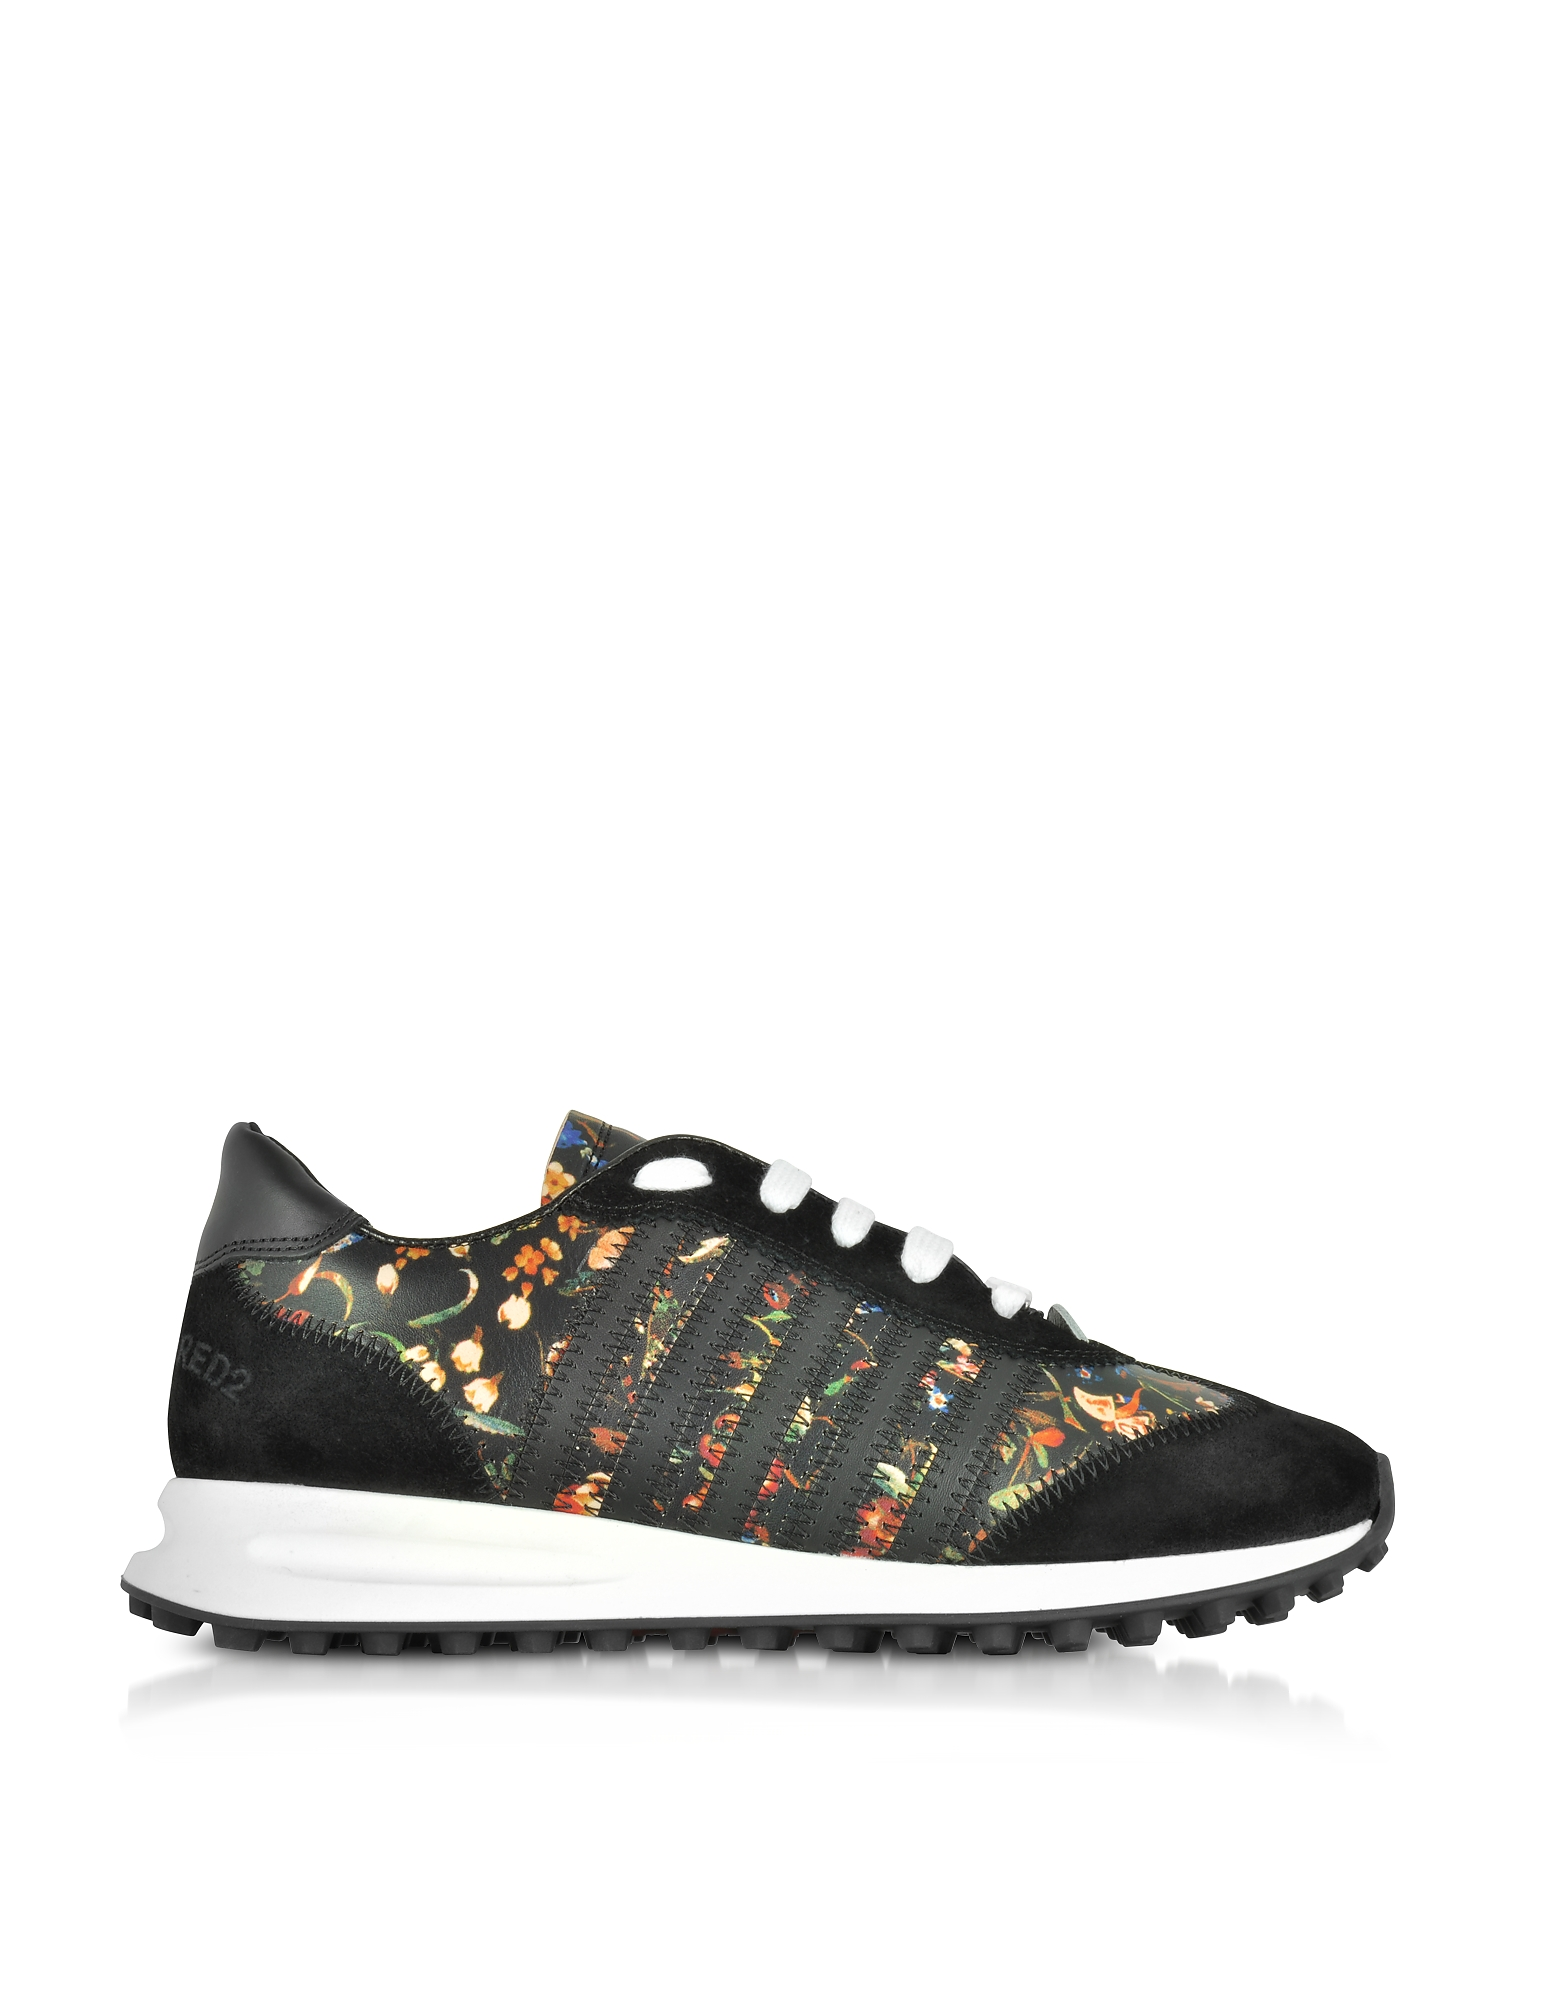 DSquared2 Shoes, Black Suede and Floral Leather Women's Sneakers